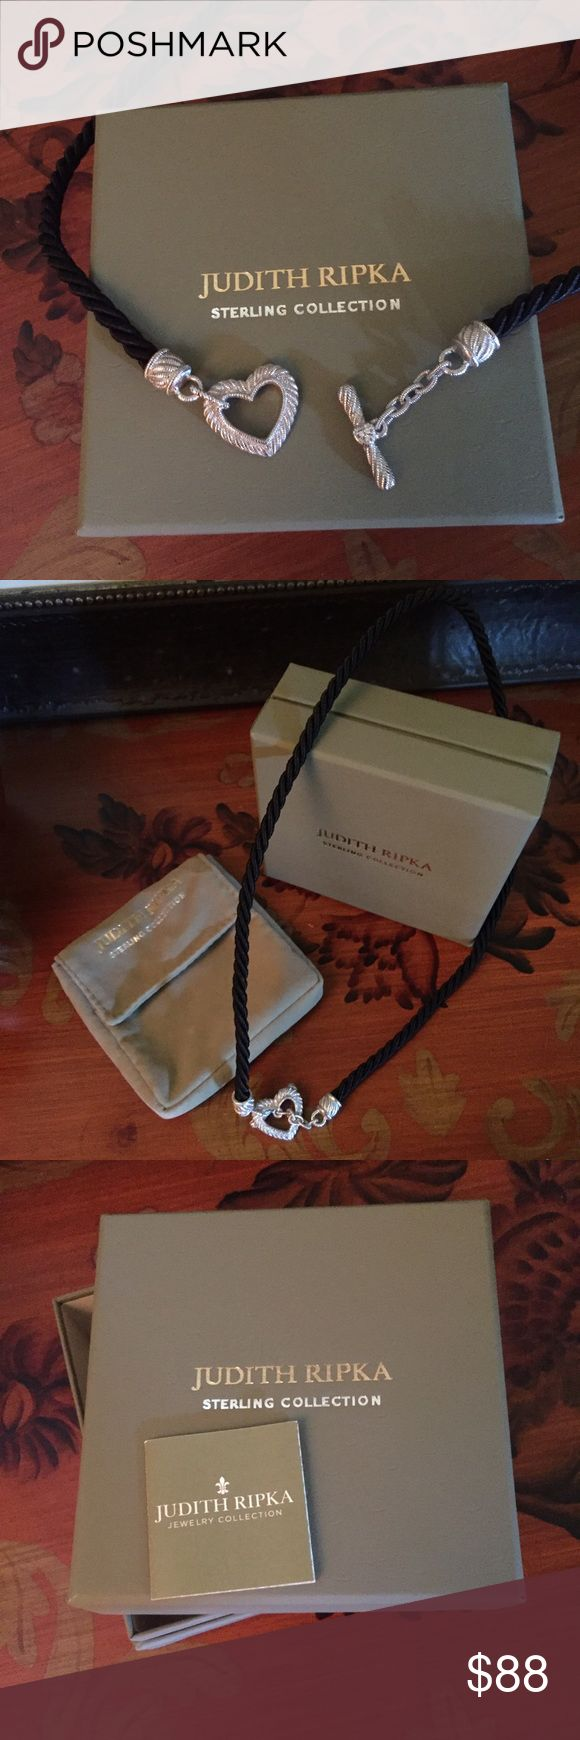 JUDITH RIPKA necklace Authentic Judith Ripka Sterling Silver & Leather Cord…